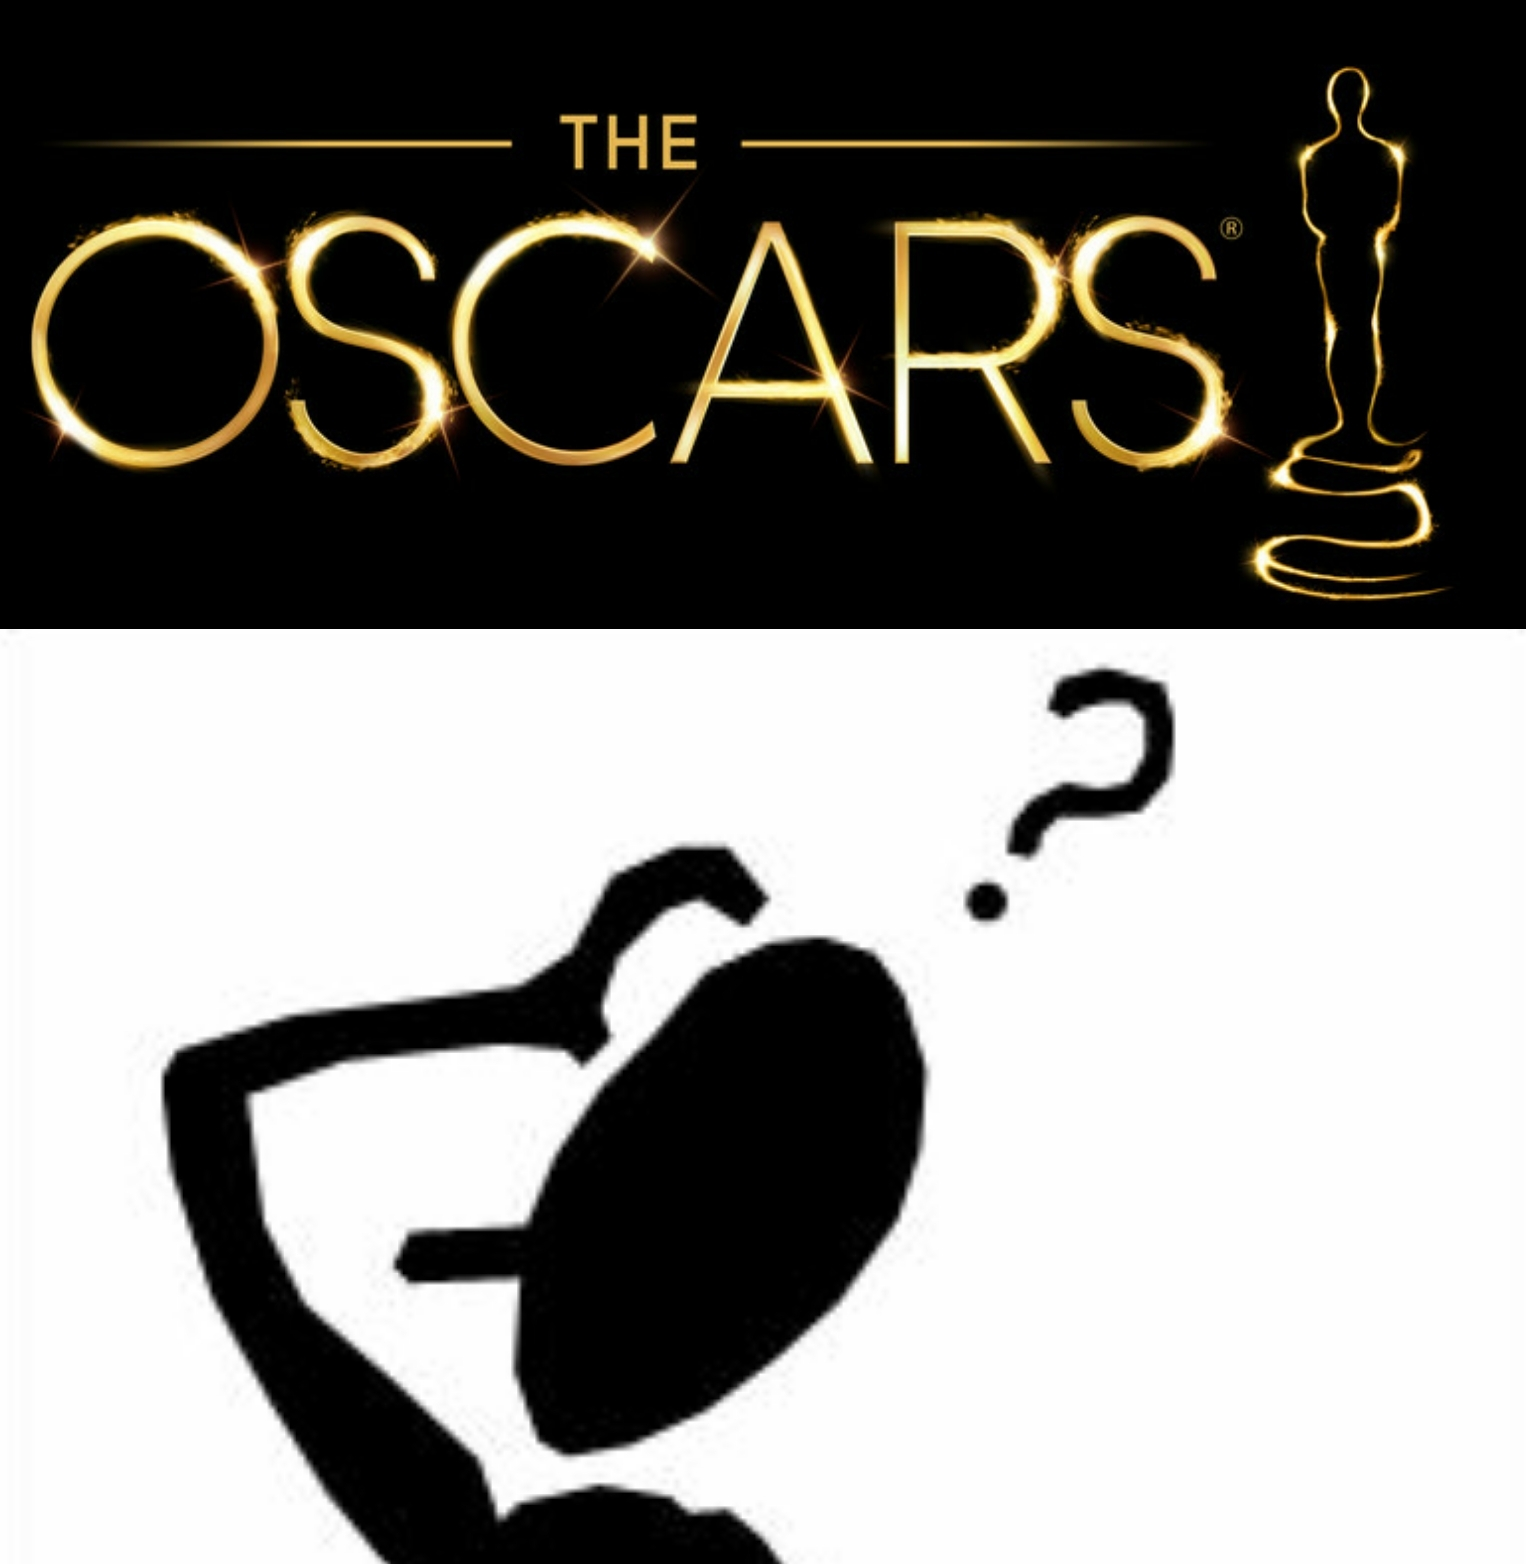 Oscar Changes Special 2018 - Amanda has her Oscar crew, Joe L, Sean and Stephen, join her to discuss the recently announced changes coming to the Oscars. They all talk about the changing landscape in both film and television, offer up some alternative ideas to fix these planned changes, and share their hopes about The Academy going forward.